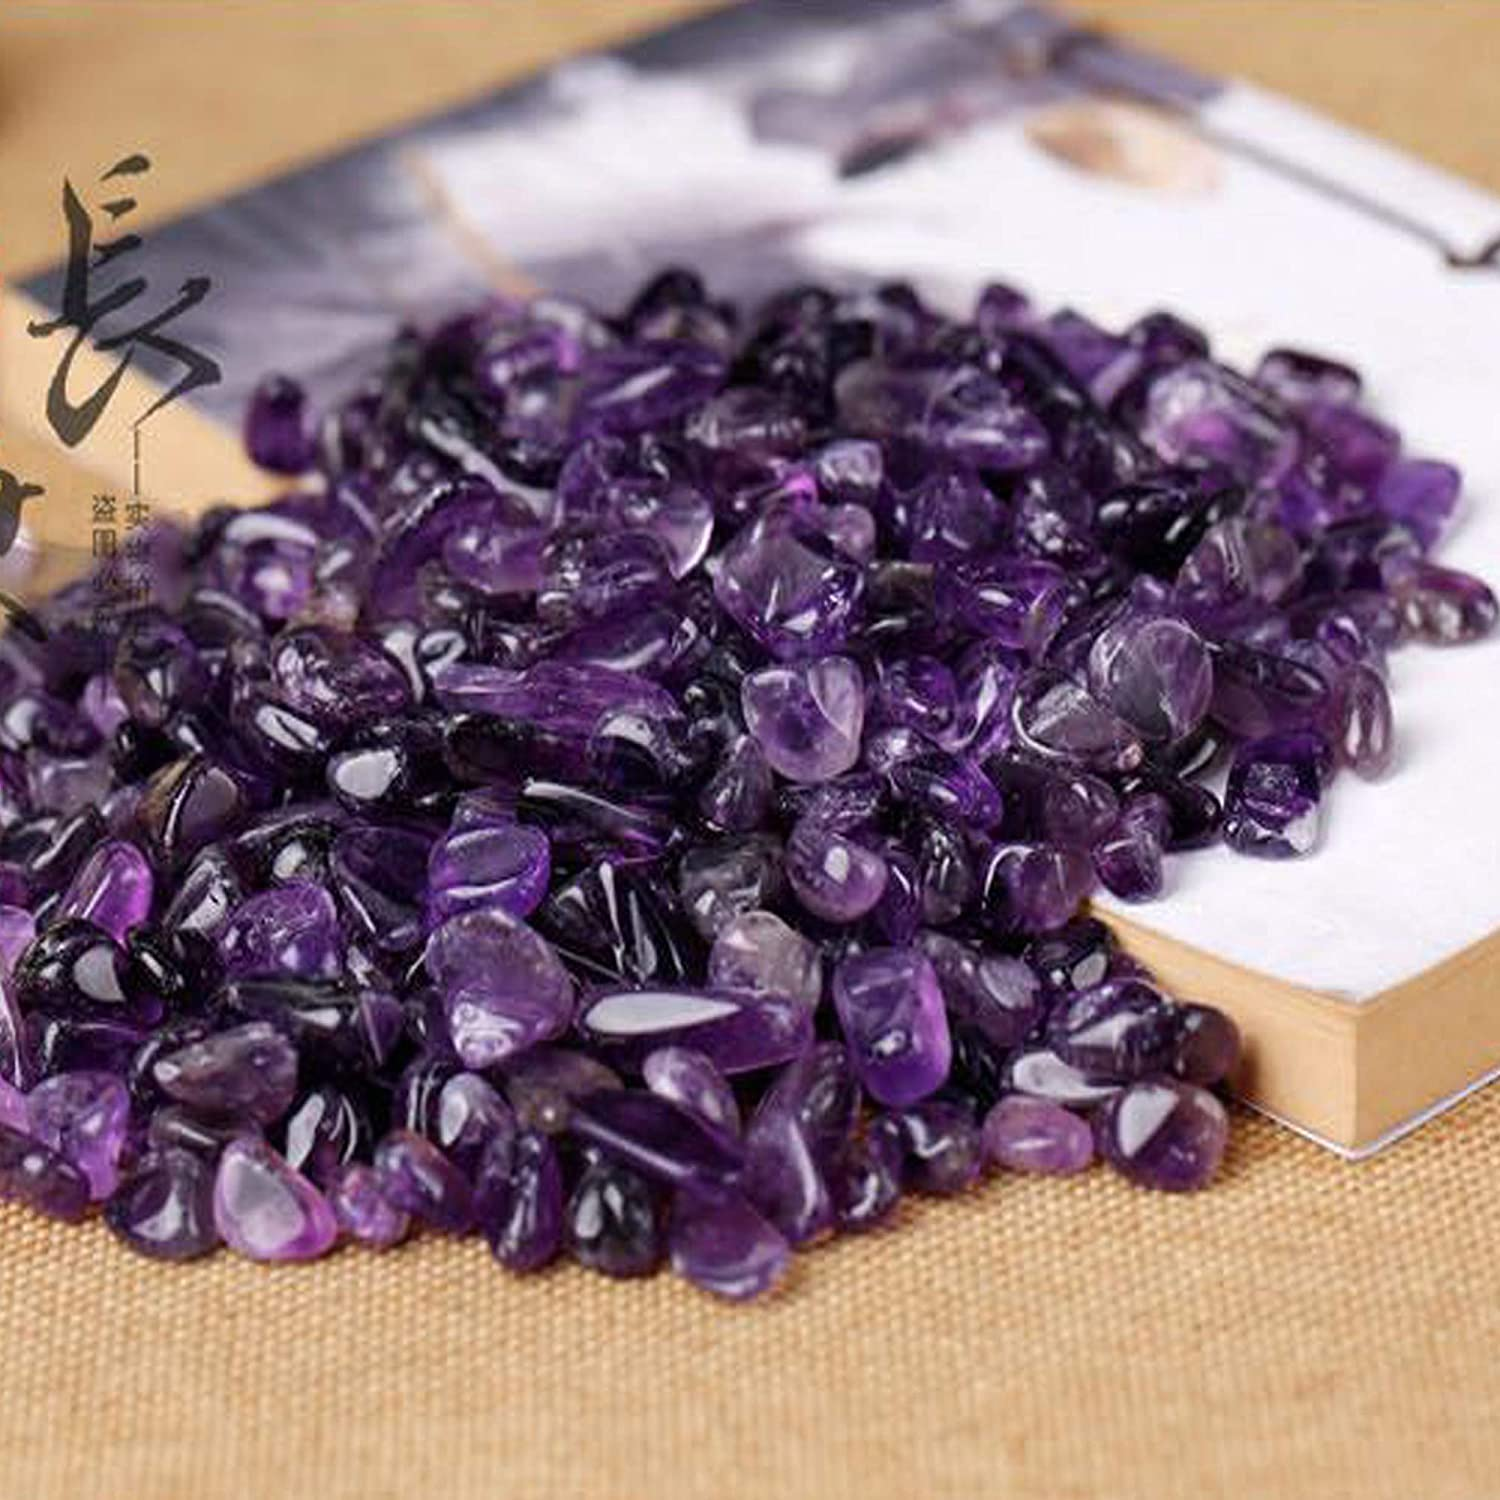 KINGYAO 1 lb Amethyst Small Tumbled Chips Crushed Stone Healing Reiki Crystal Reiki Chakra Stone Making Home Decoration vase fillers Plants Flower pots Decor